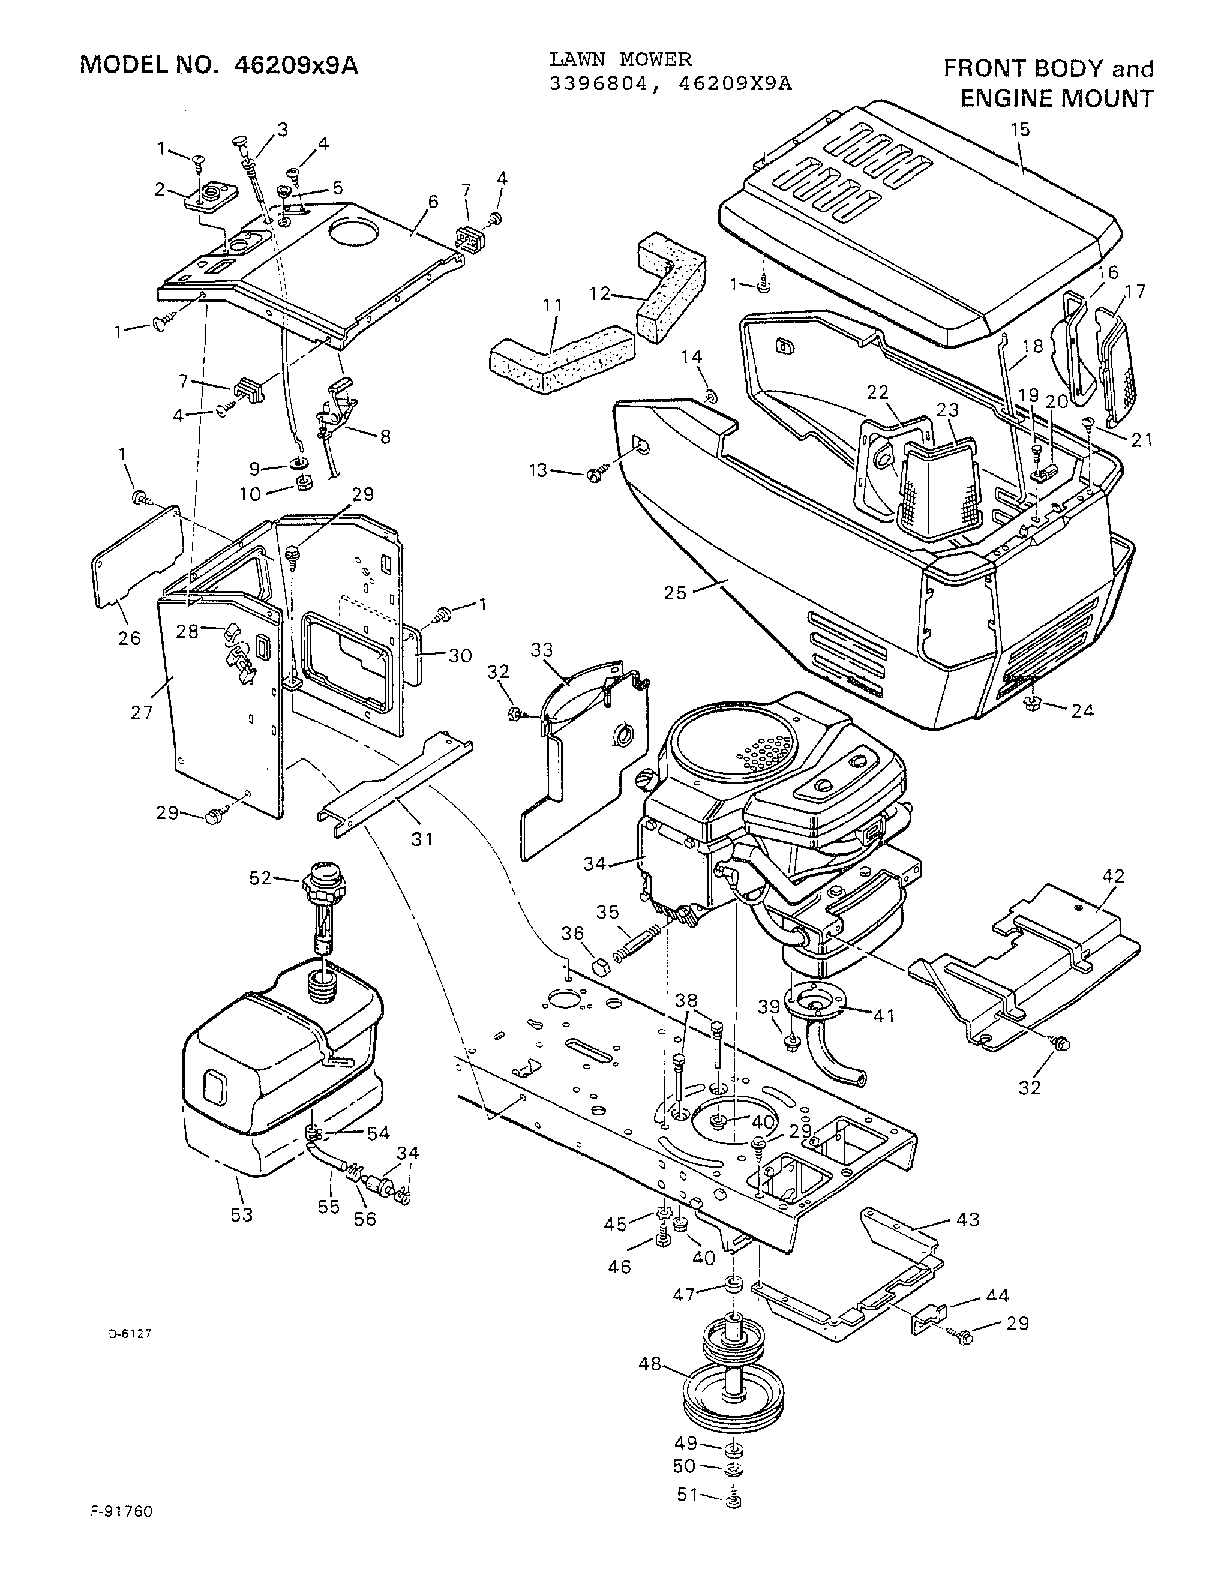 Contemporary electrical circuit diagram murray lawn mower parts model 46209x9a sears partsdirect